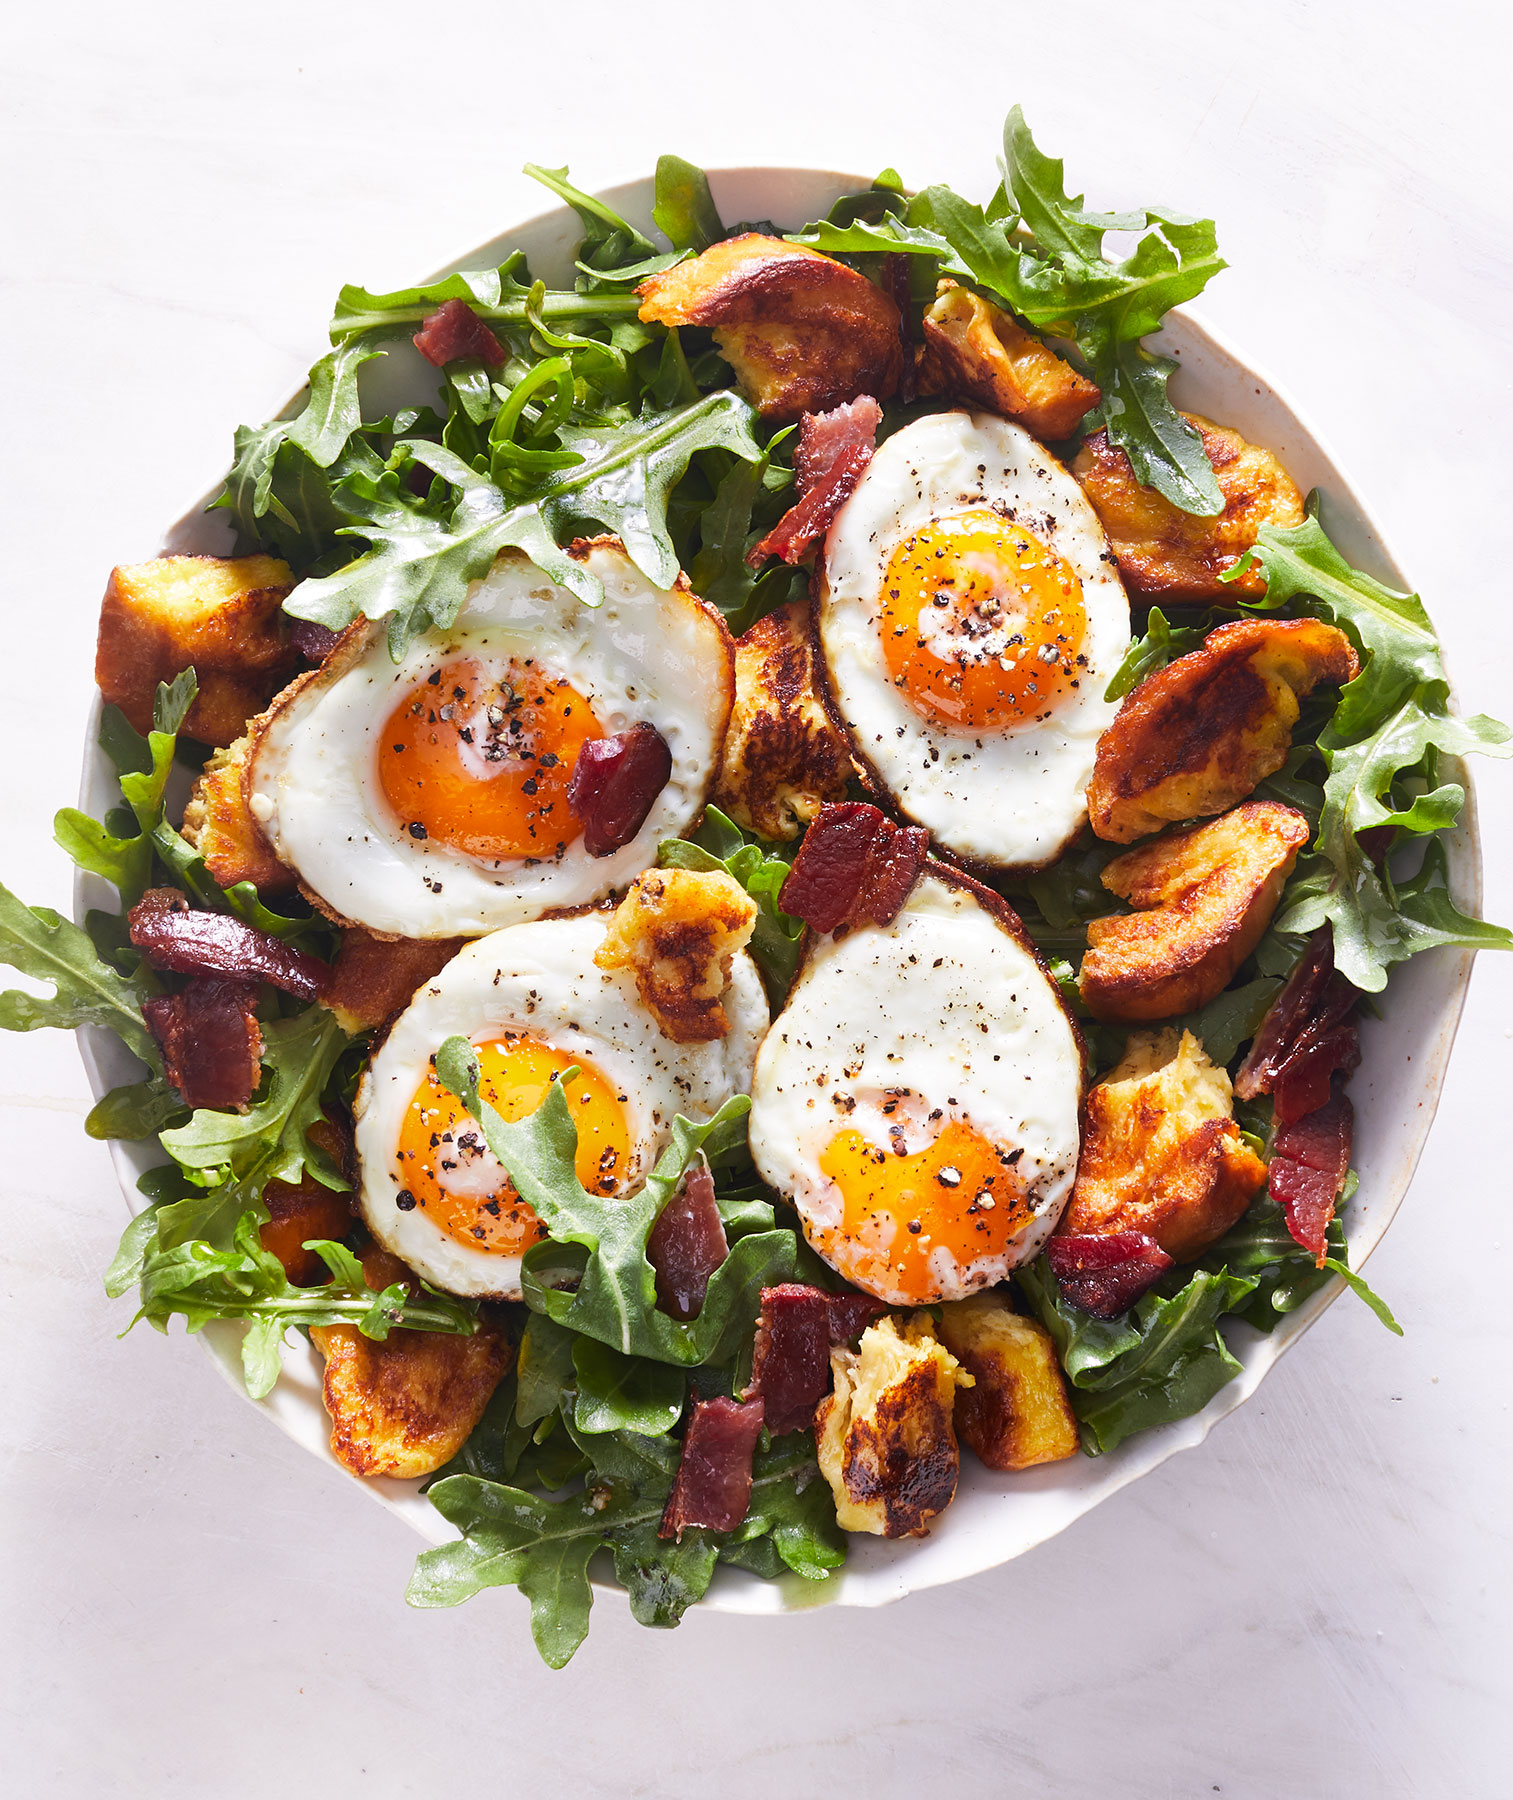 Breakfast Salad With French Toast Croutons